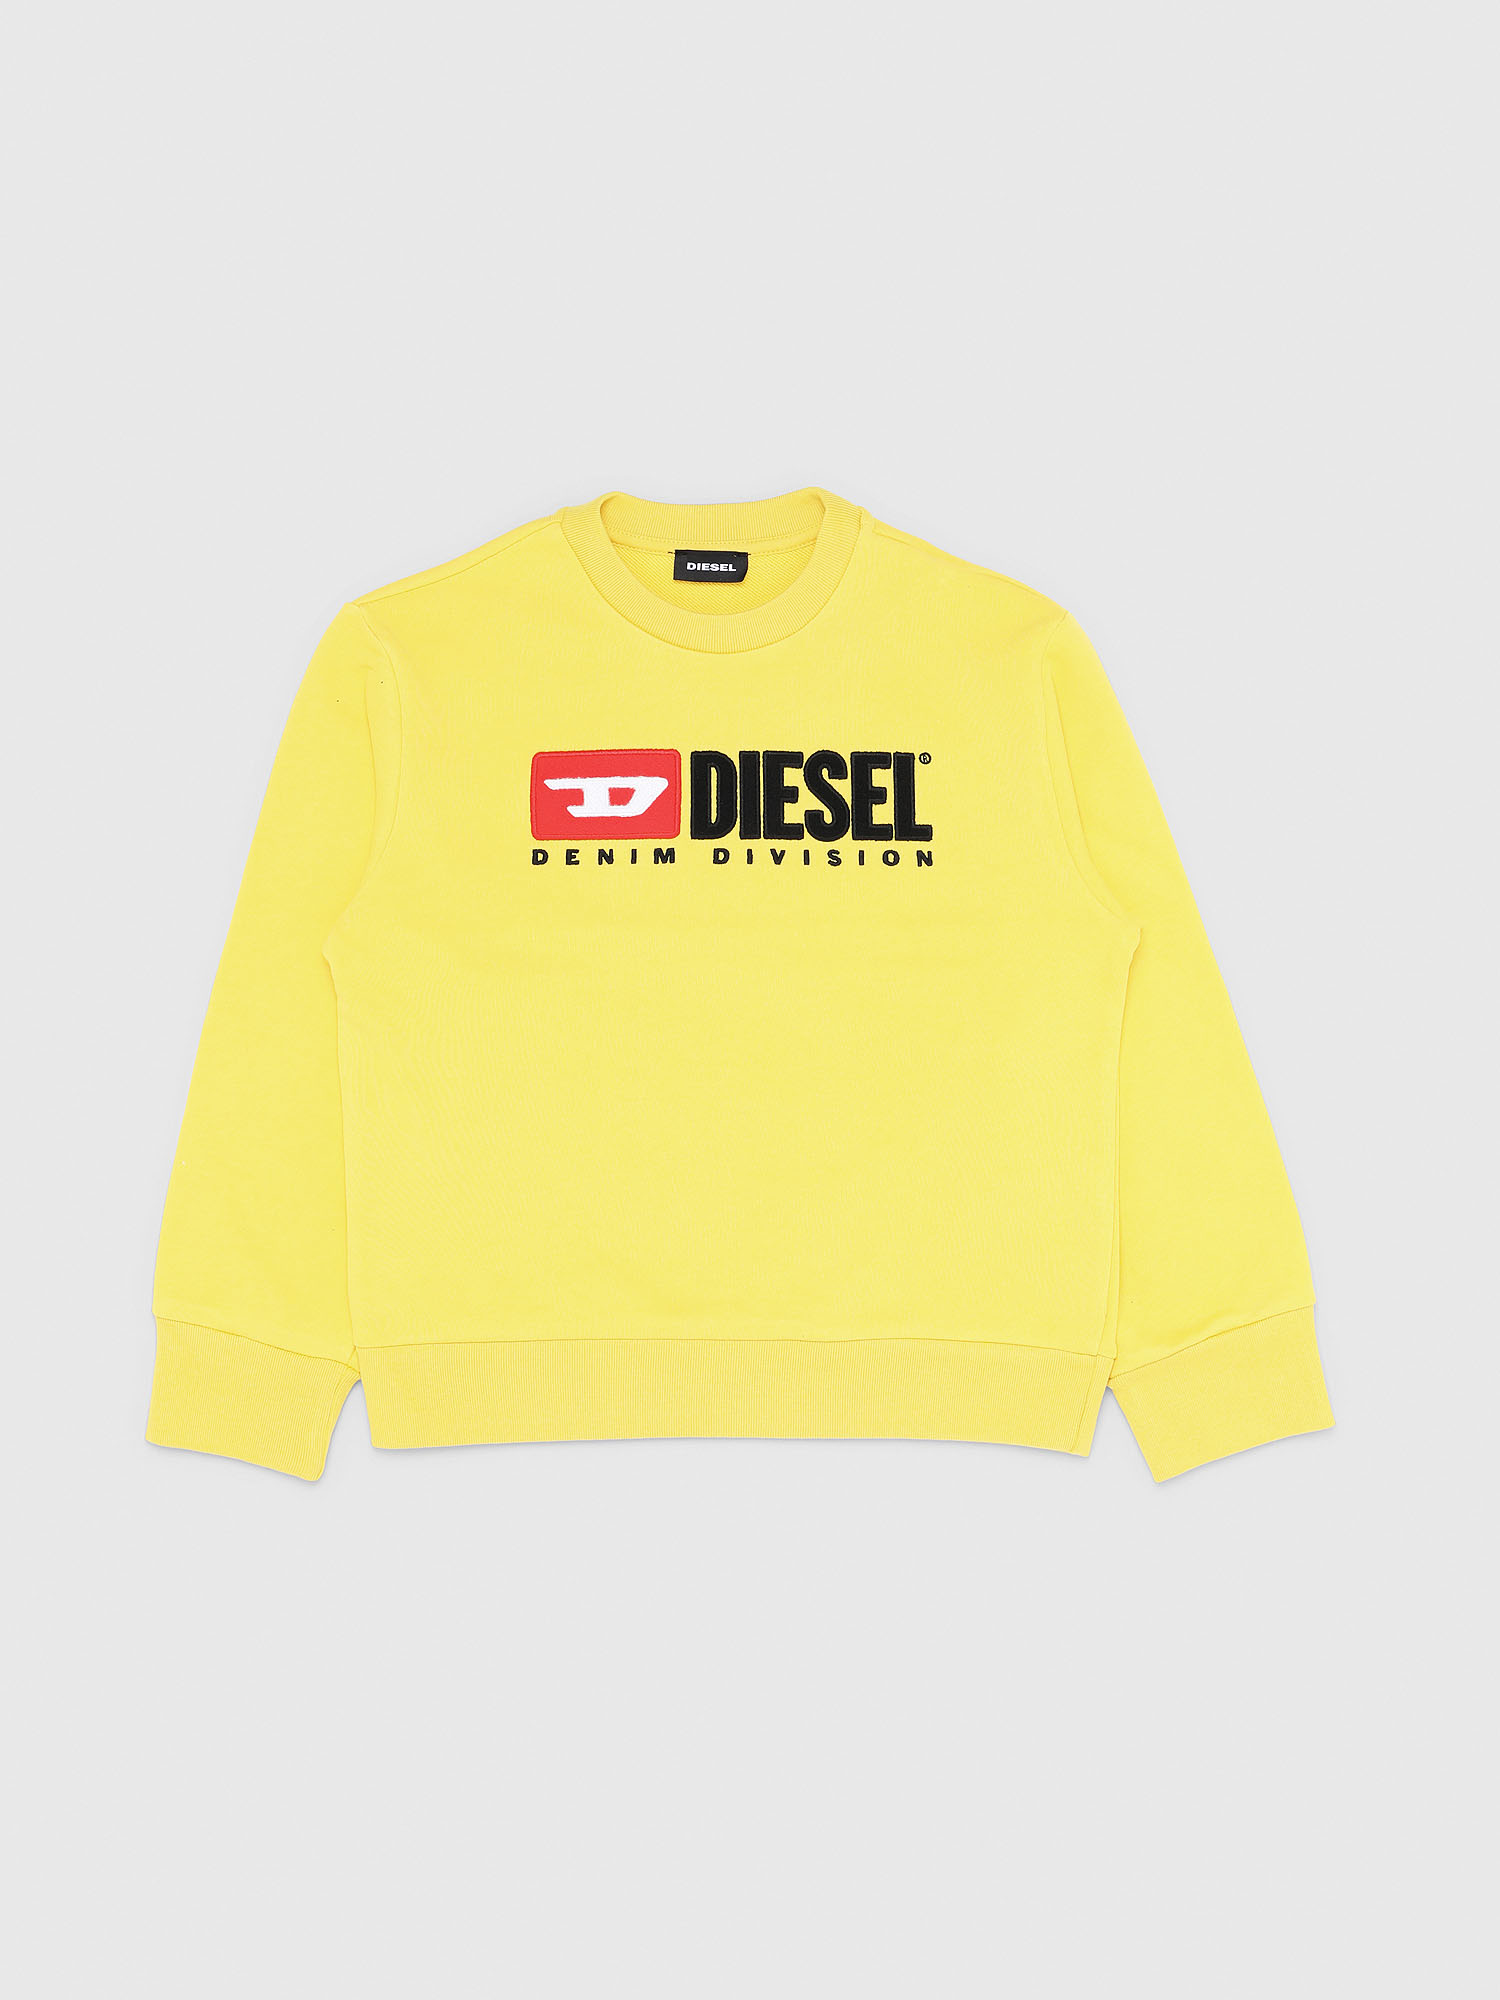 Diesel - SCREWDIVISION OVER,  - Felpe - Image 1